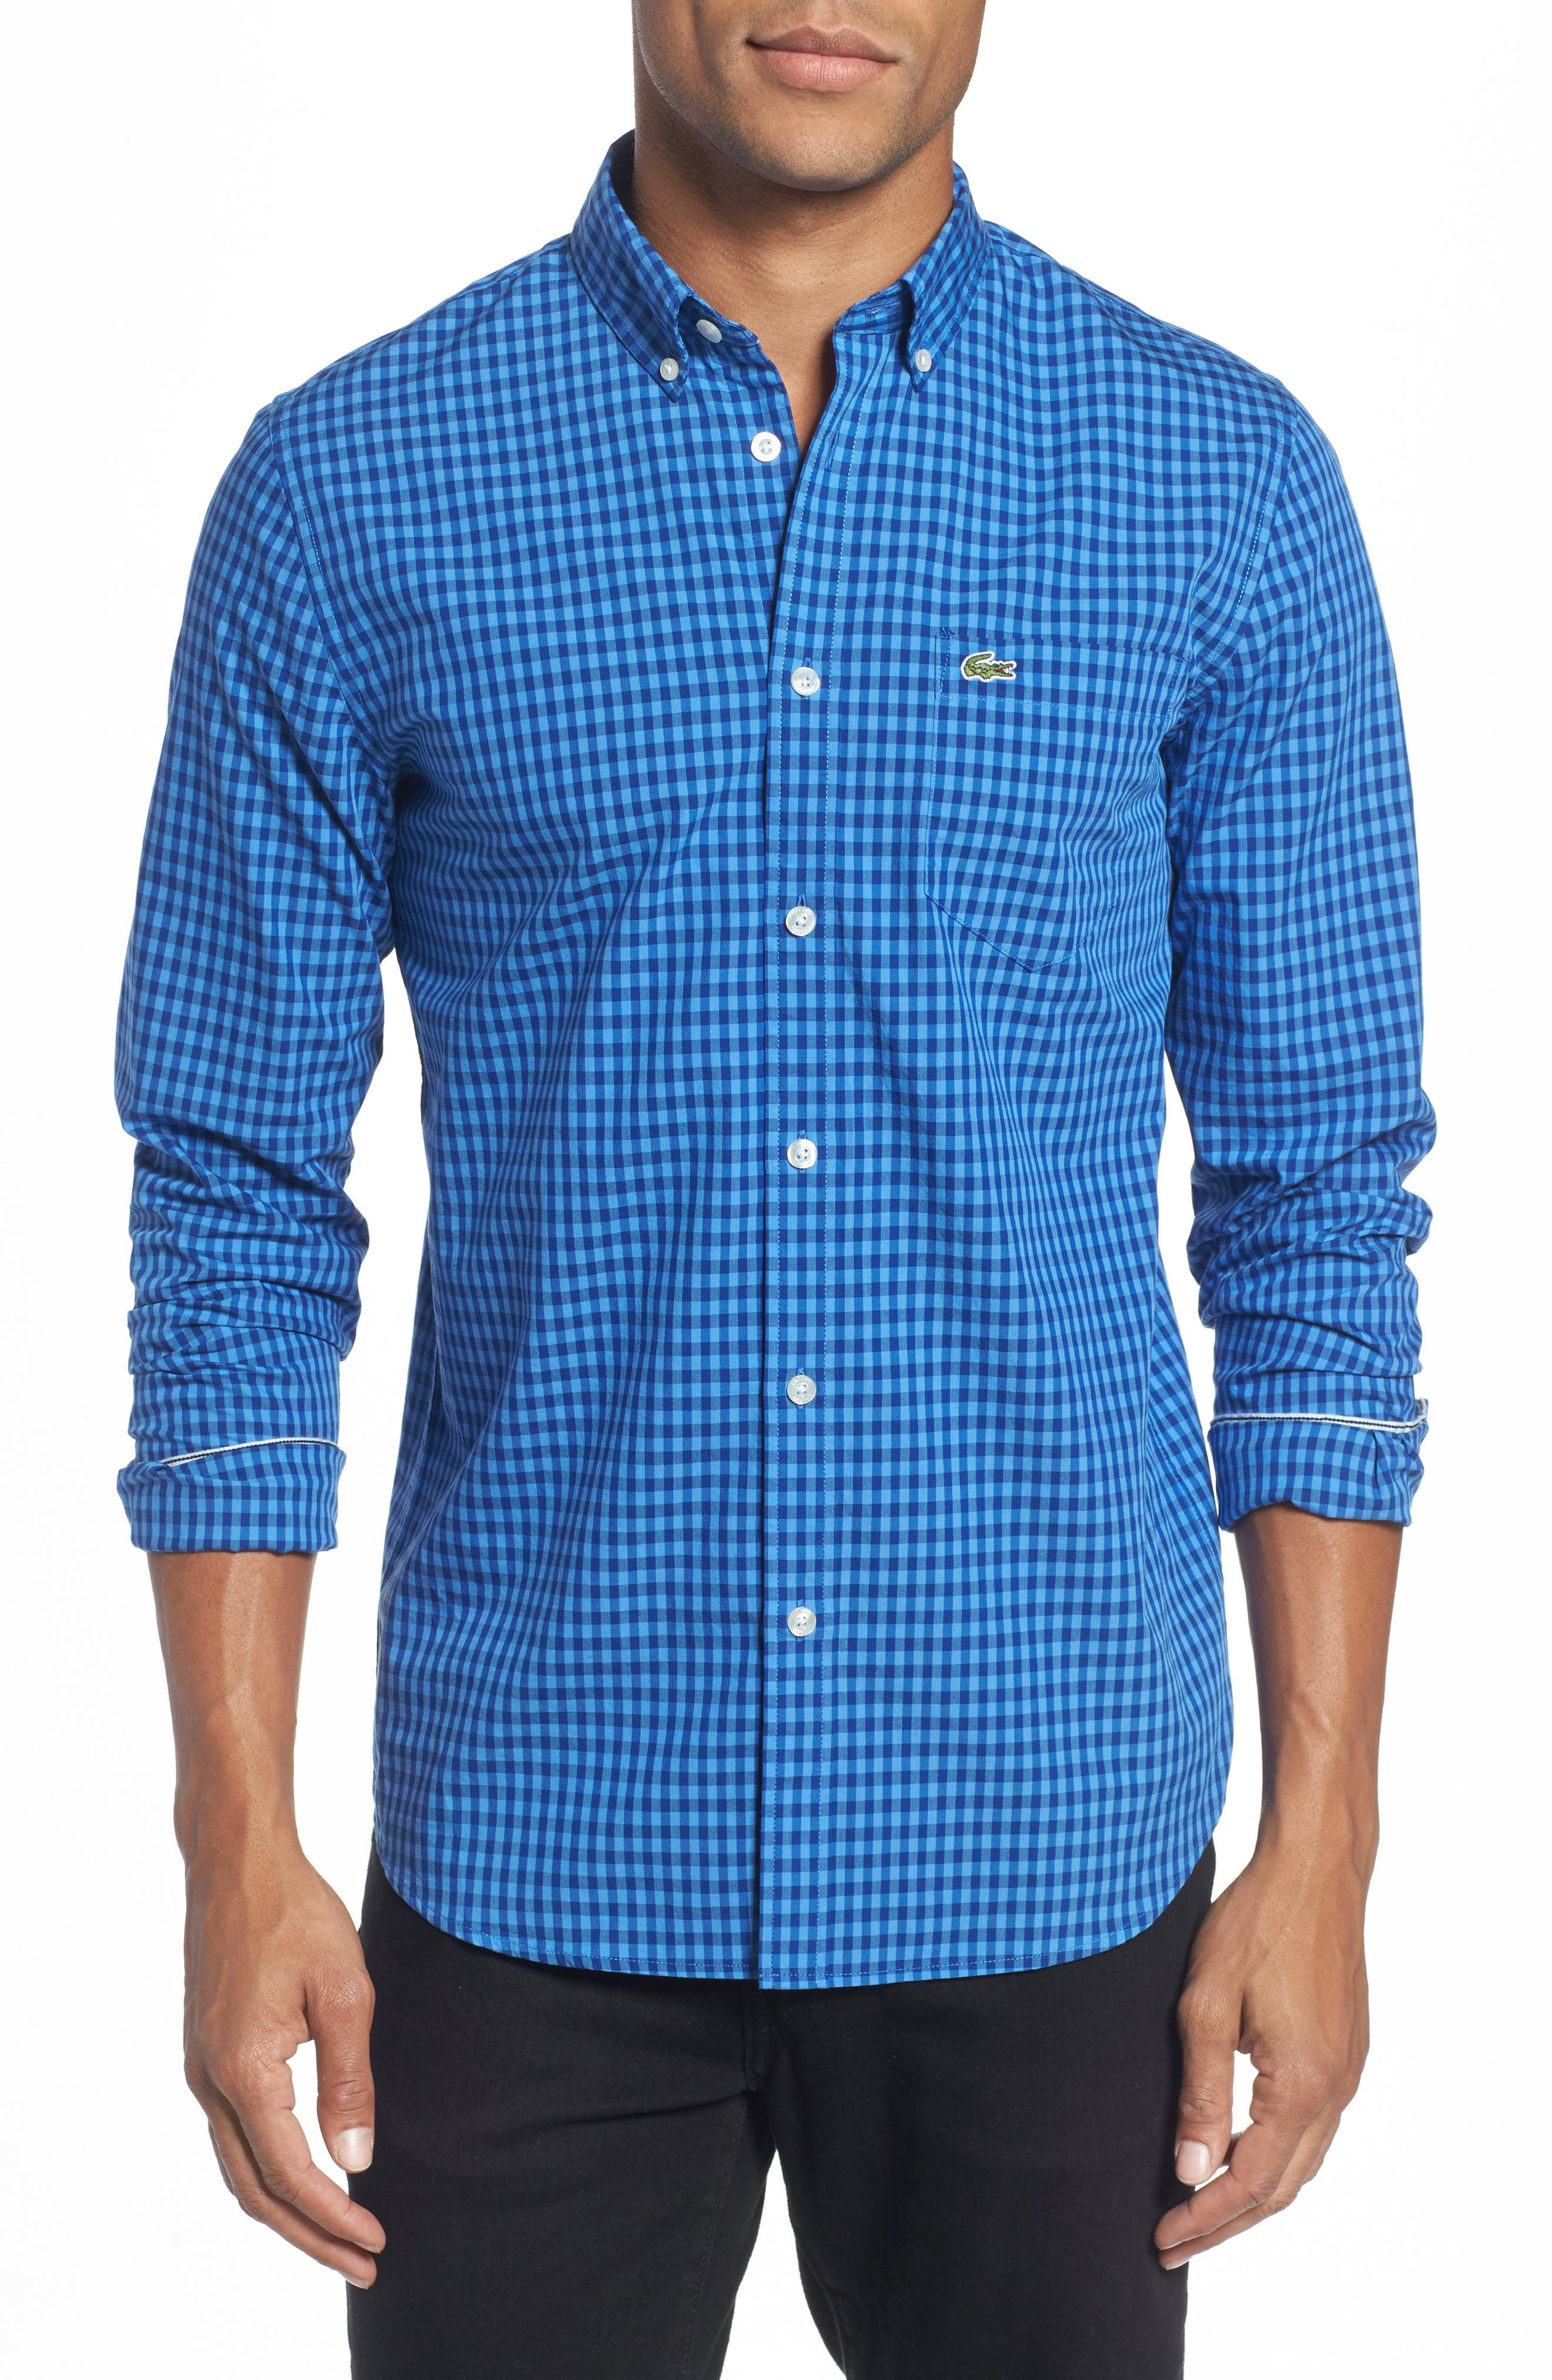 Lacoste Gingham Check Poplin Shirt